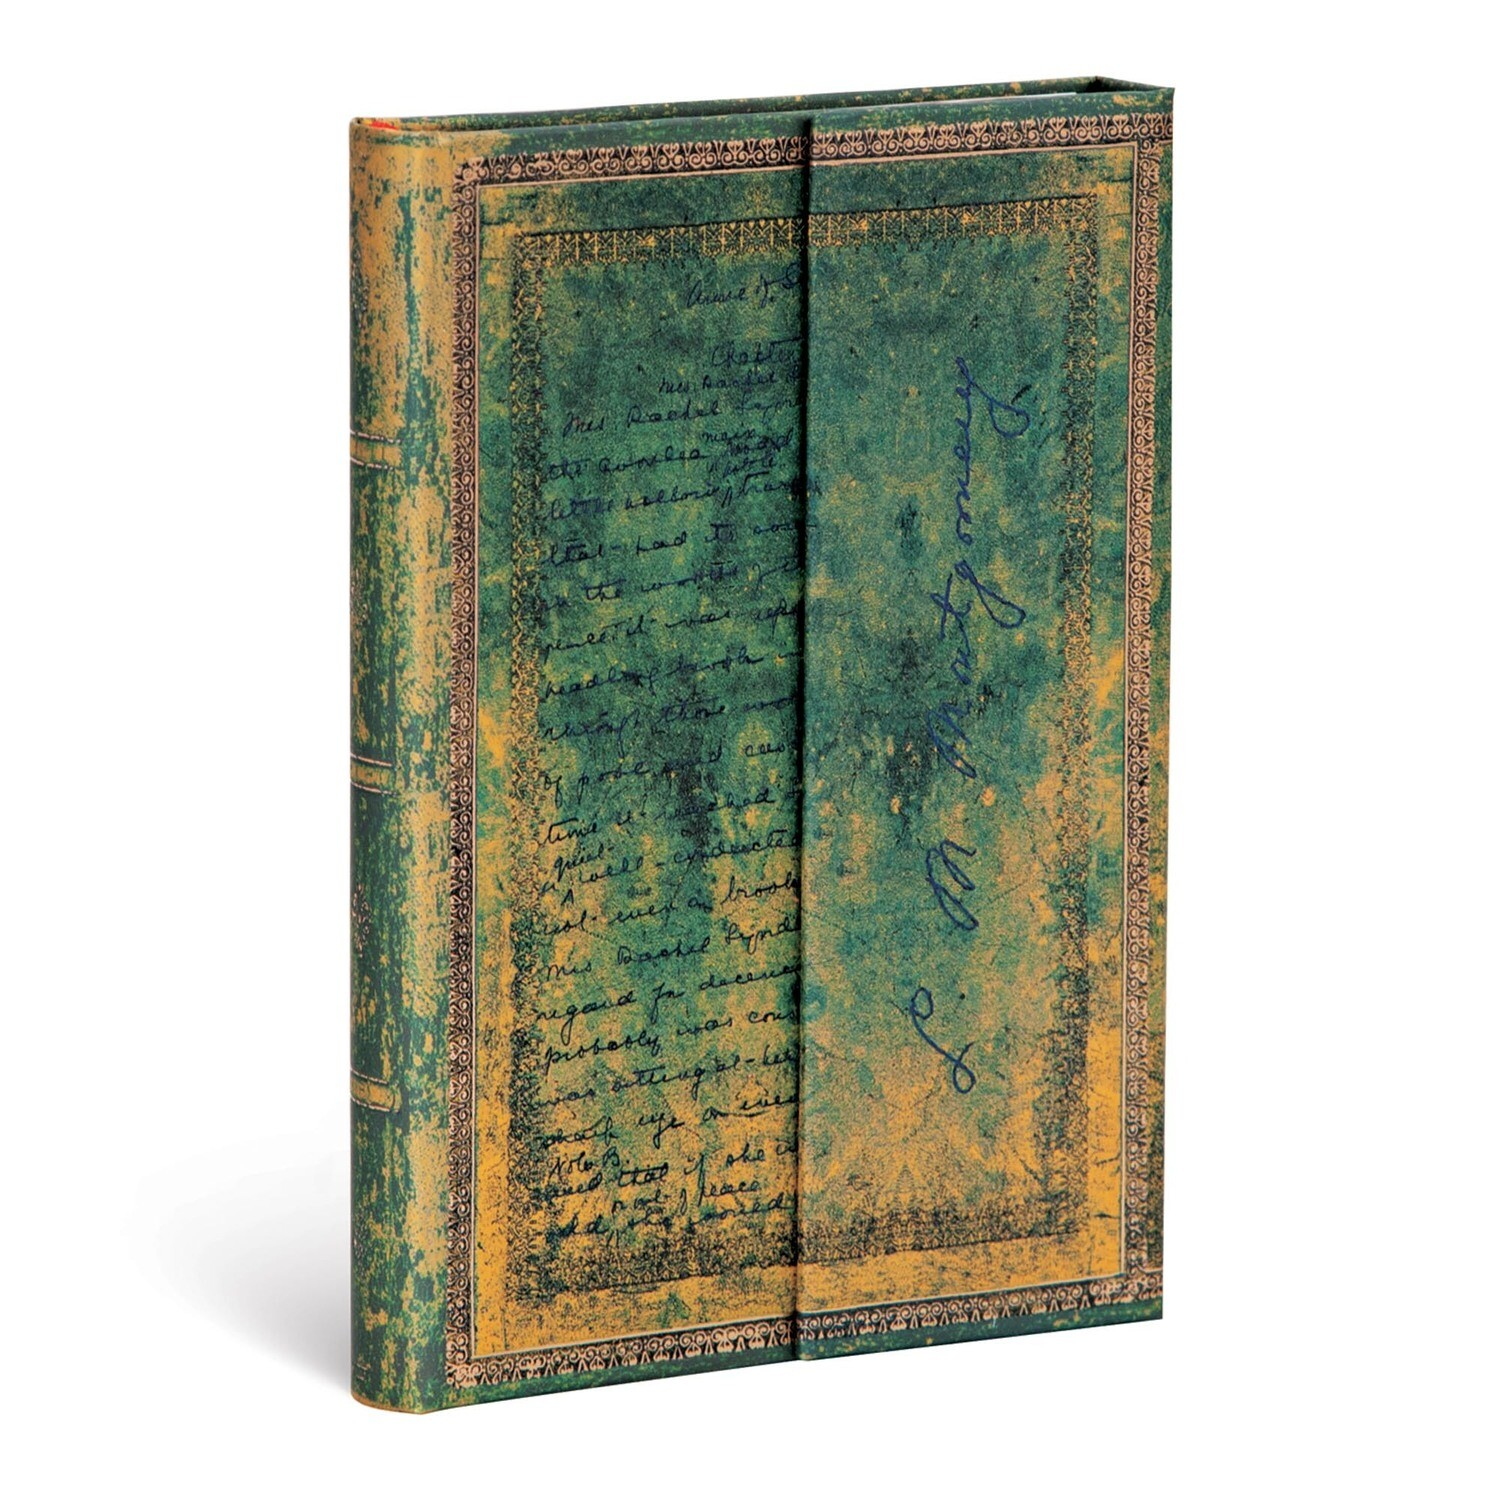 Journal, Lined, Mini Wrap L.M. Montgomery, Anne Of Green Gables - Embellished Manuscripts